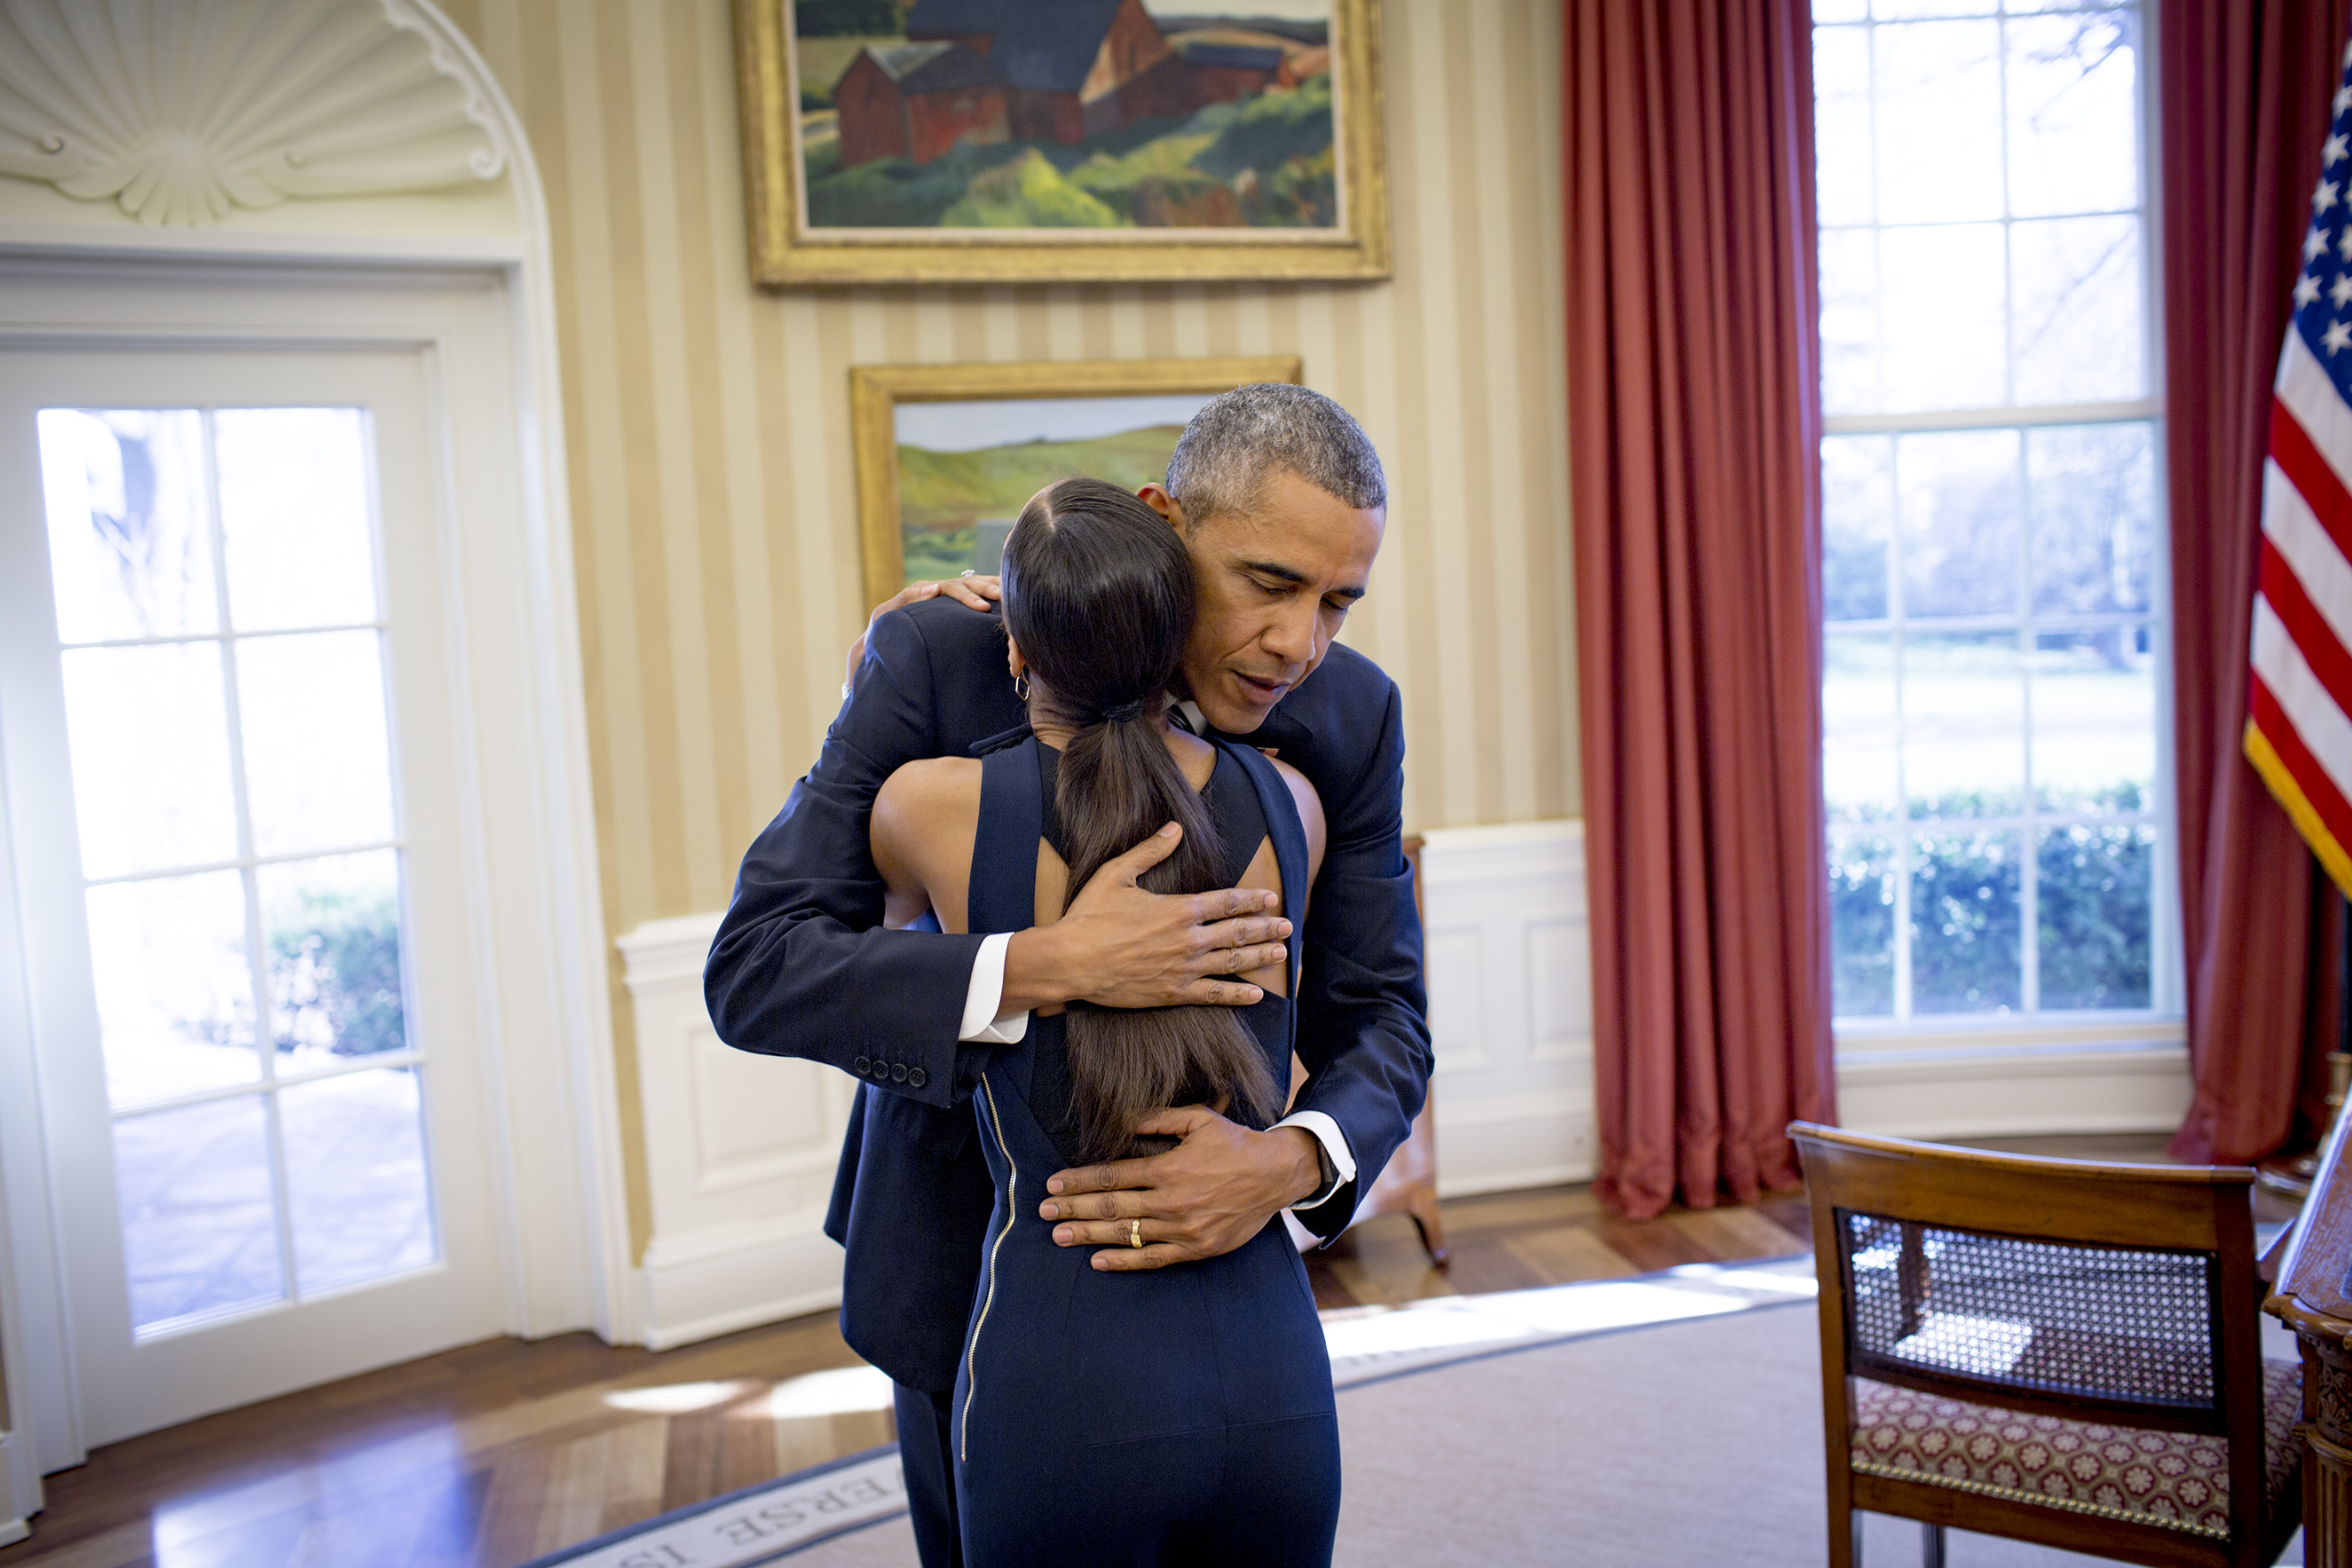 President Barack Obama and American Ballet Theater principal dancer, Misty Copeland, in the Oval Office at the White House, Feb. 29, 2016.From  In Conversation: Misty Copeland and Barack Obama.  March 28, 2016 issue.